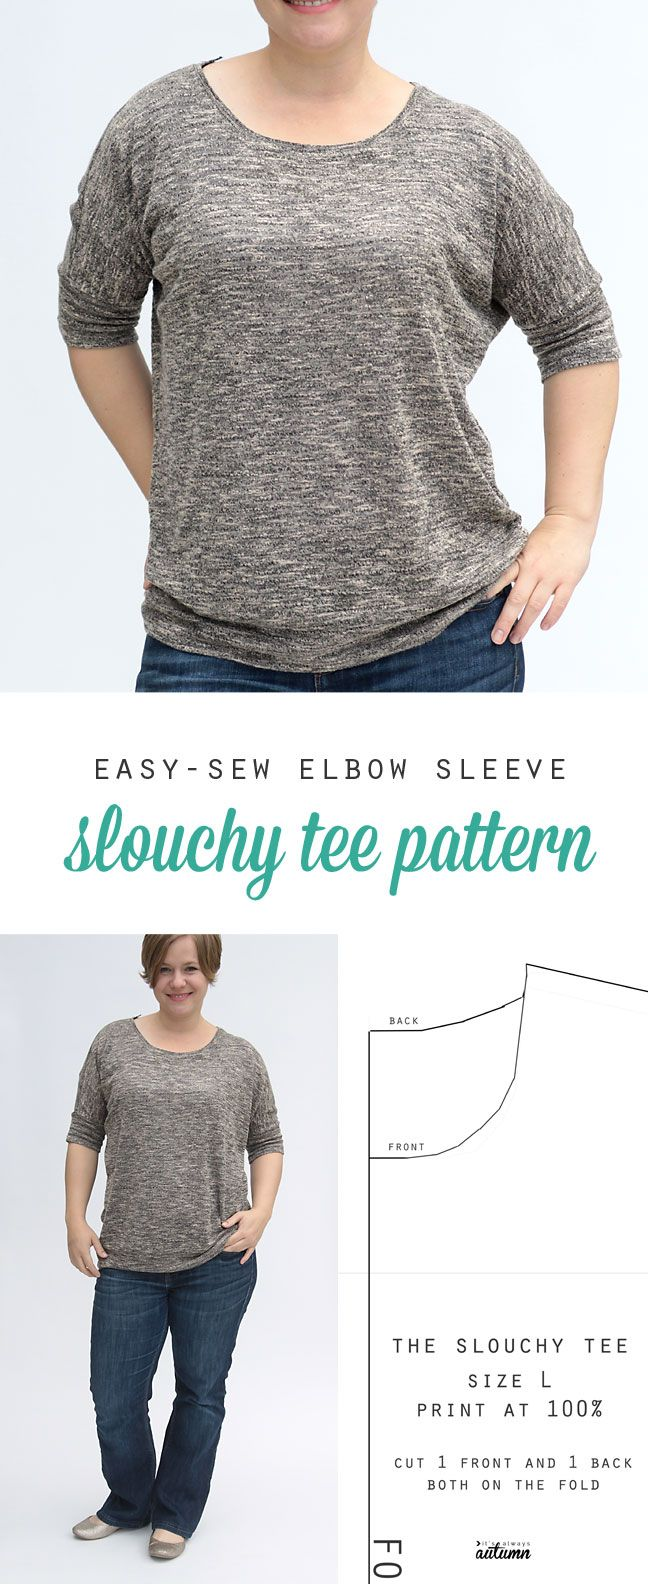 2f203887425c7 free sewing pattern for this easy women's slouchy tee in size L - with  dolman elbow length sleeves